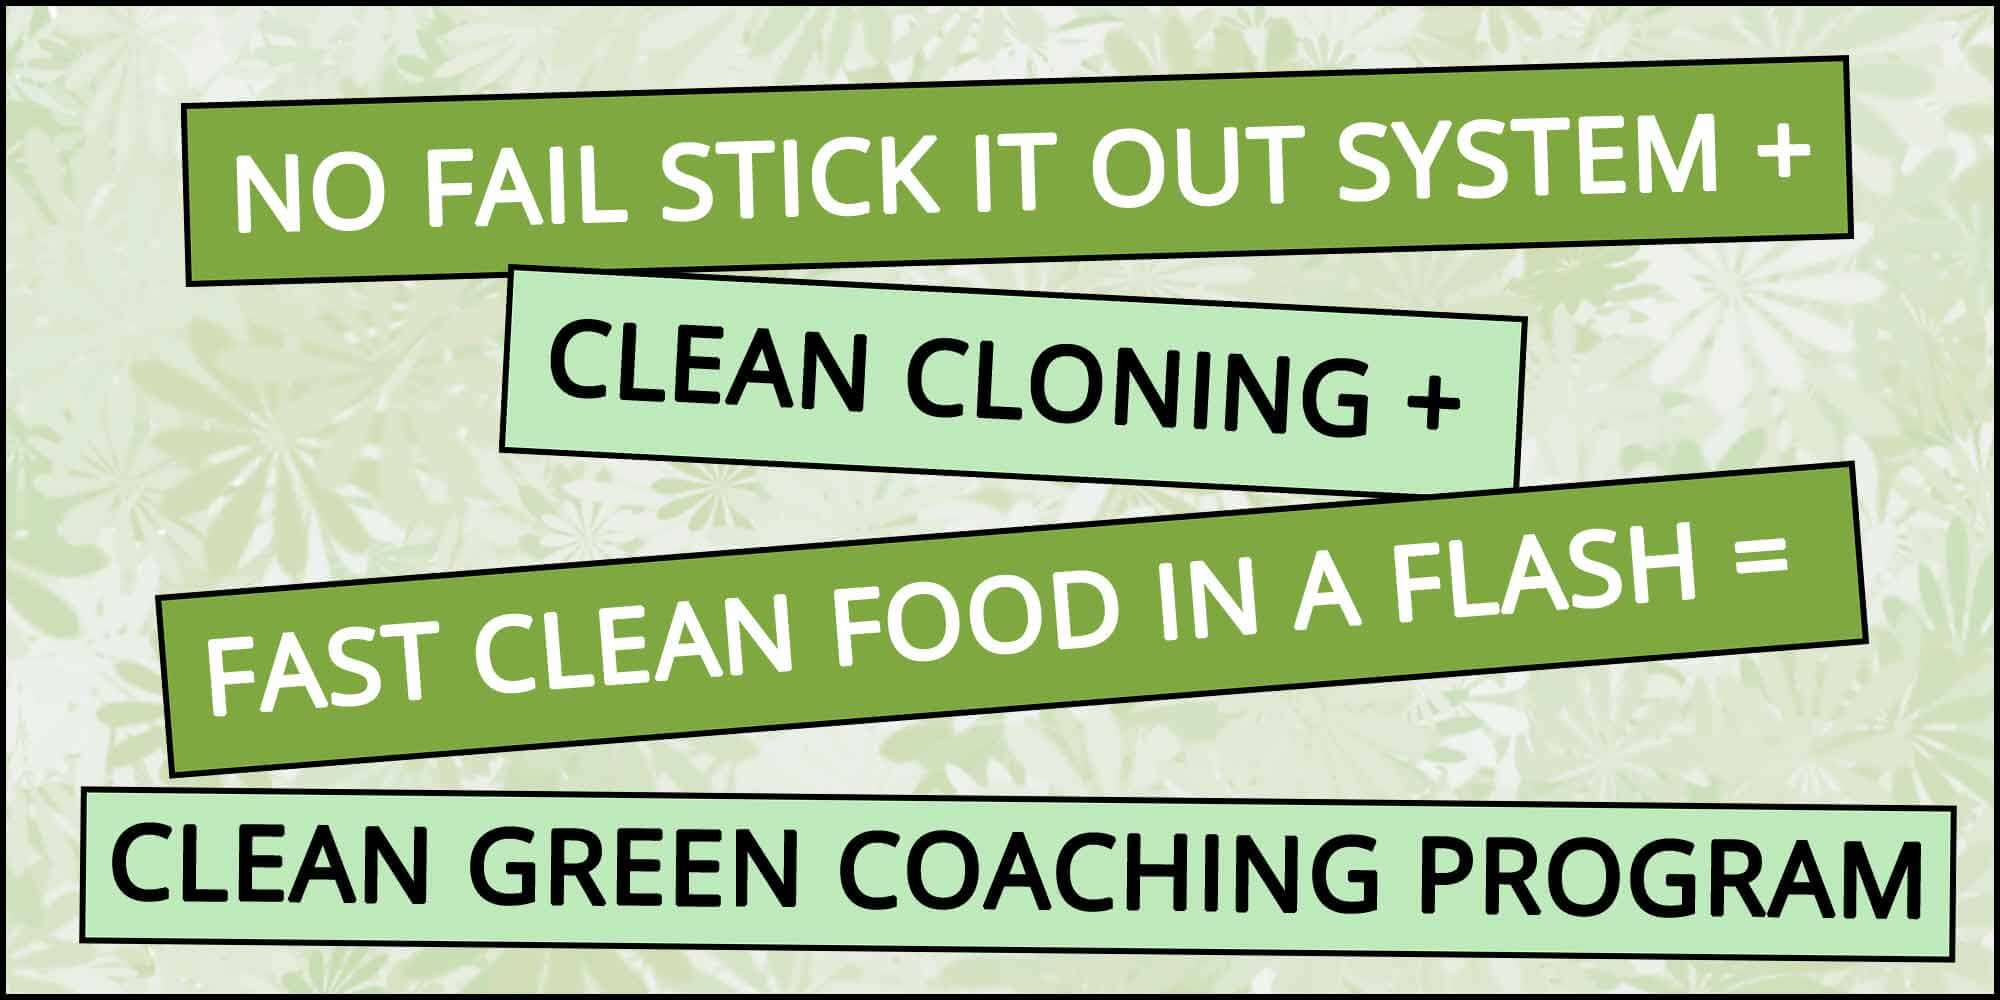 NO FAIL STICK IT OUT SYSTEM + CLEAN CLONING + FAST CLEAN FOOD IN A FLASH = CLEAN GREEN COACHING PROGRAM